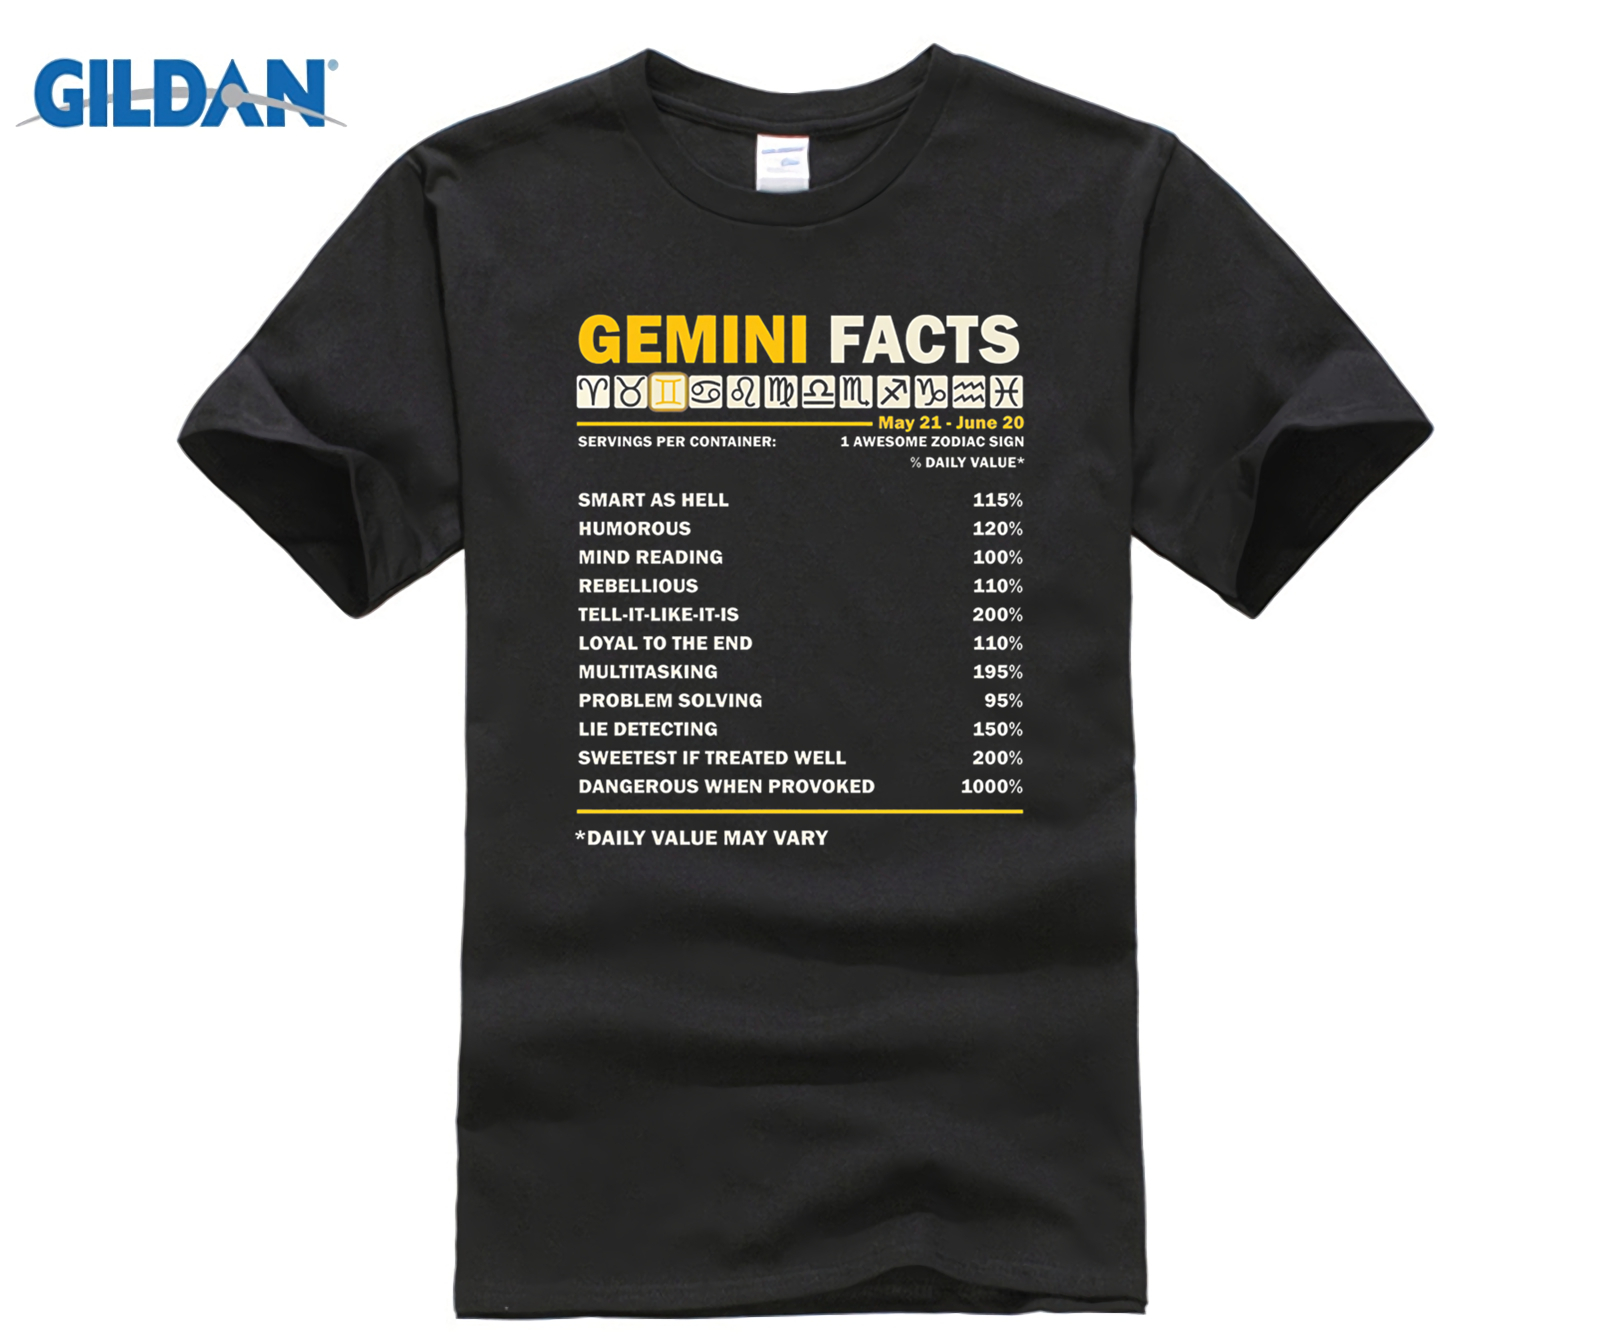 GILDAN Gemini Facts T Shirt Gemini Awesome Zodiac Sign Mothers Day Ms. T-shirt Dress fem ...